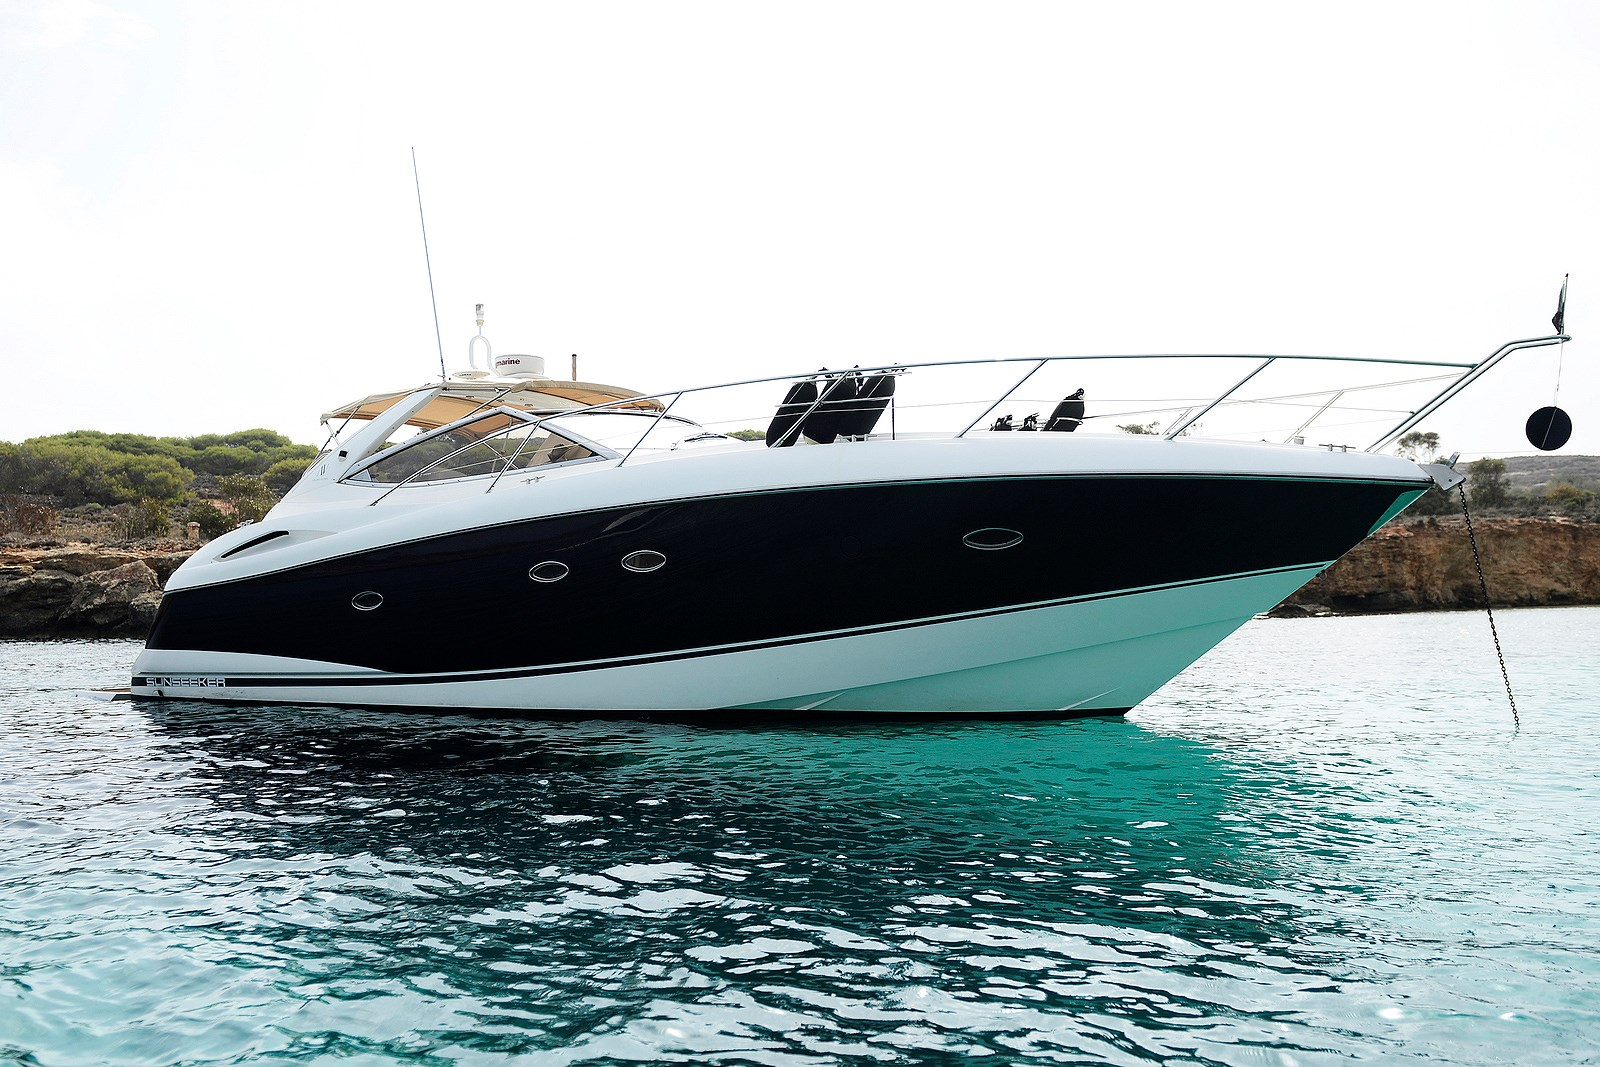 Rent / charter Luxury Yacht for Full Day Tour, Private Charter & Team Building Activities in Malta & Gozo - Portofino 46